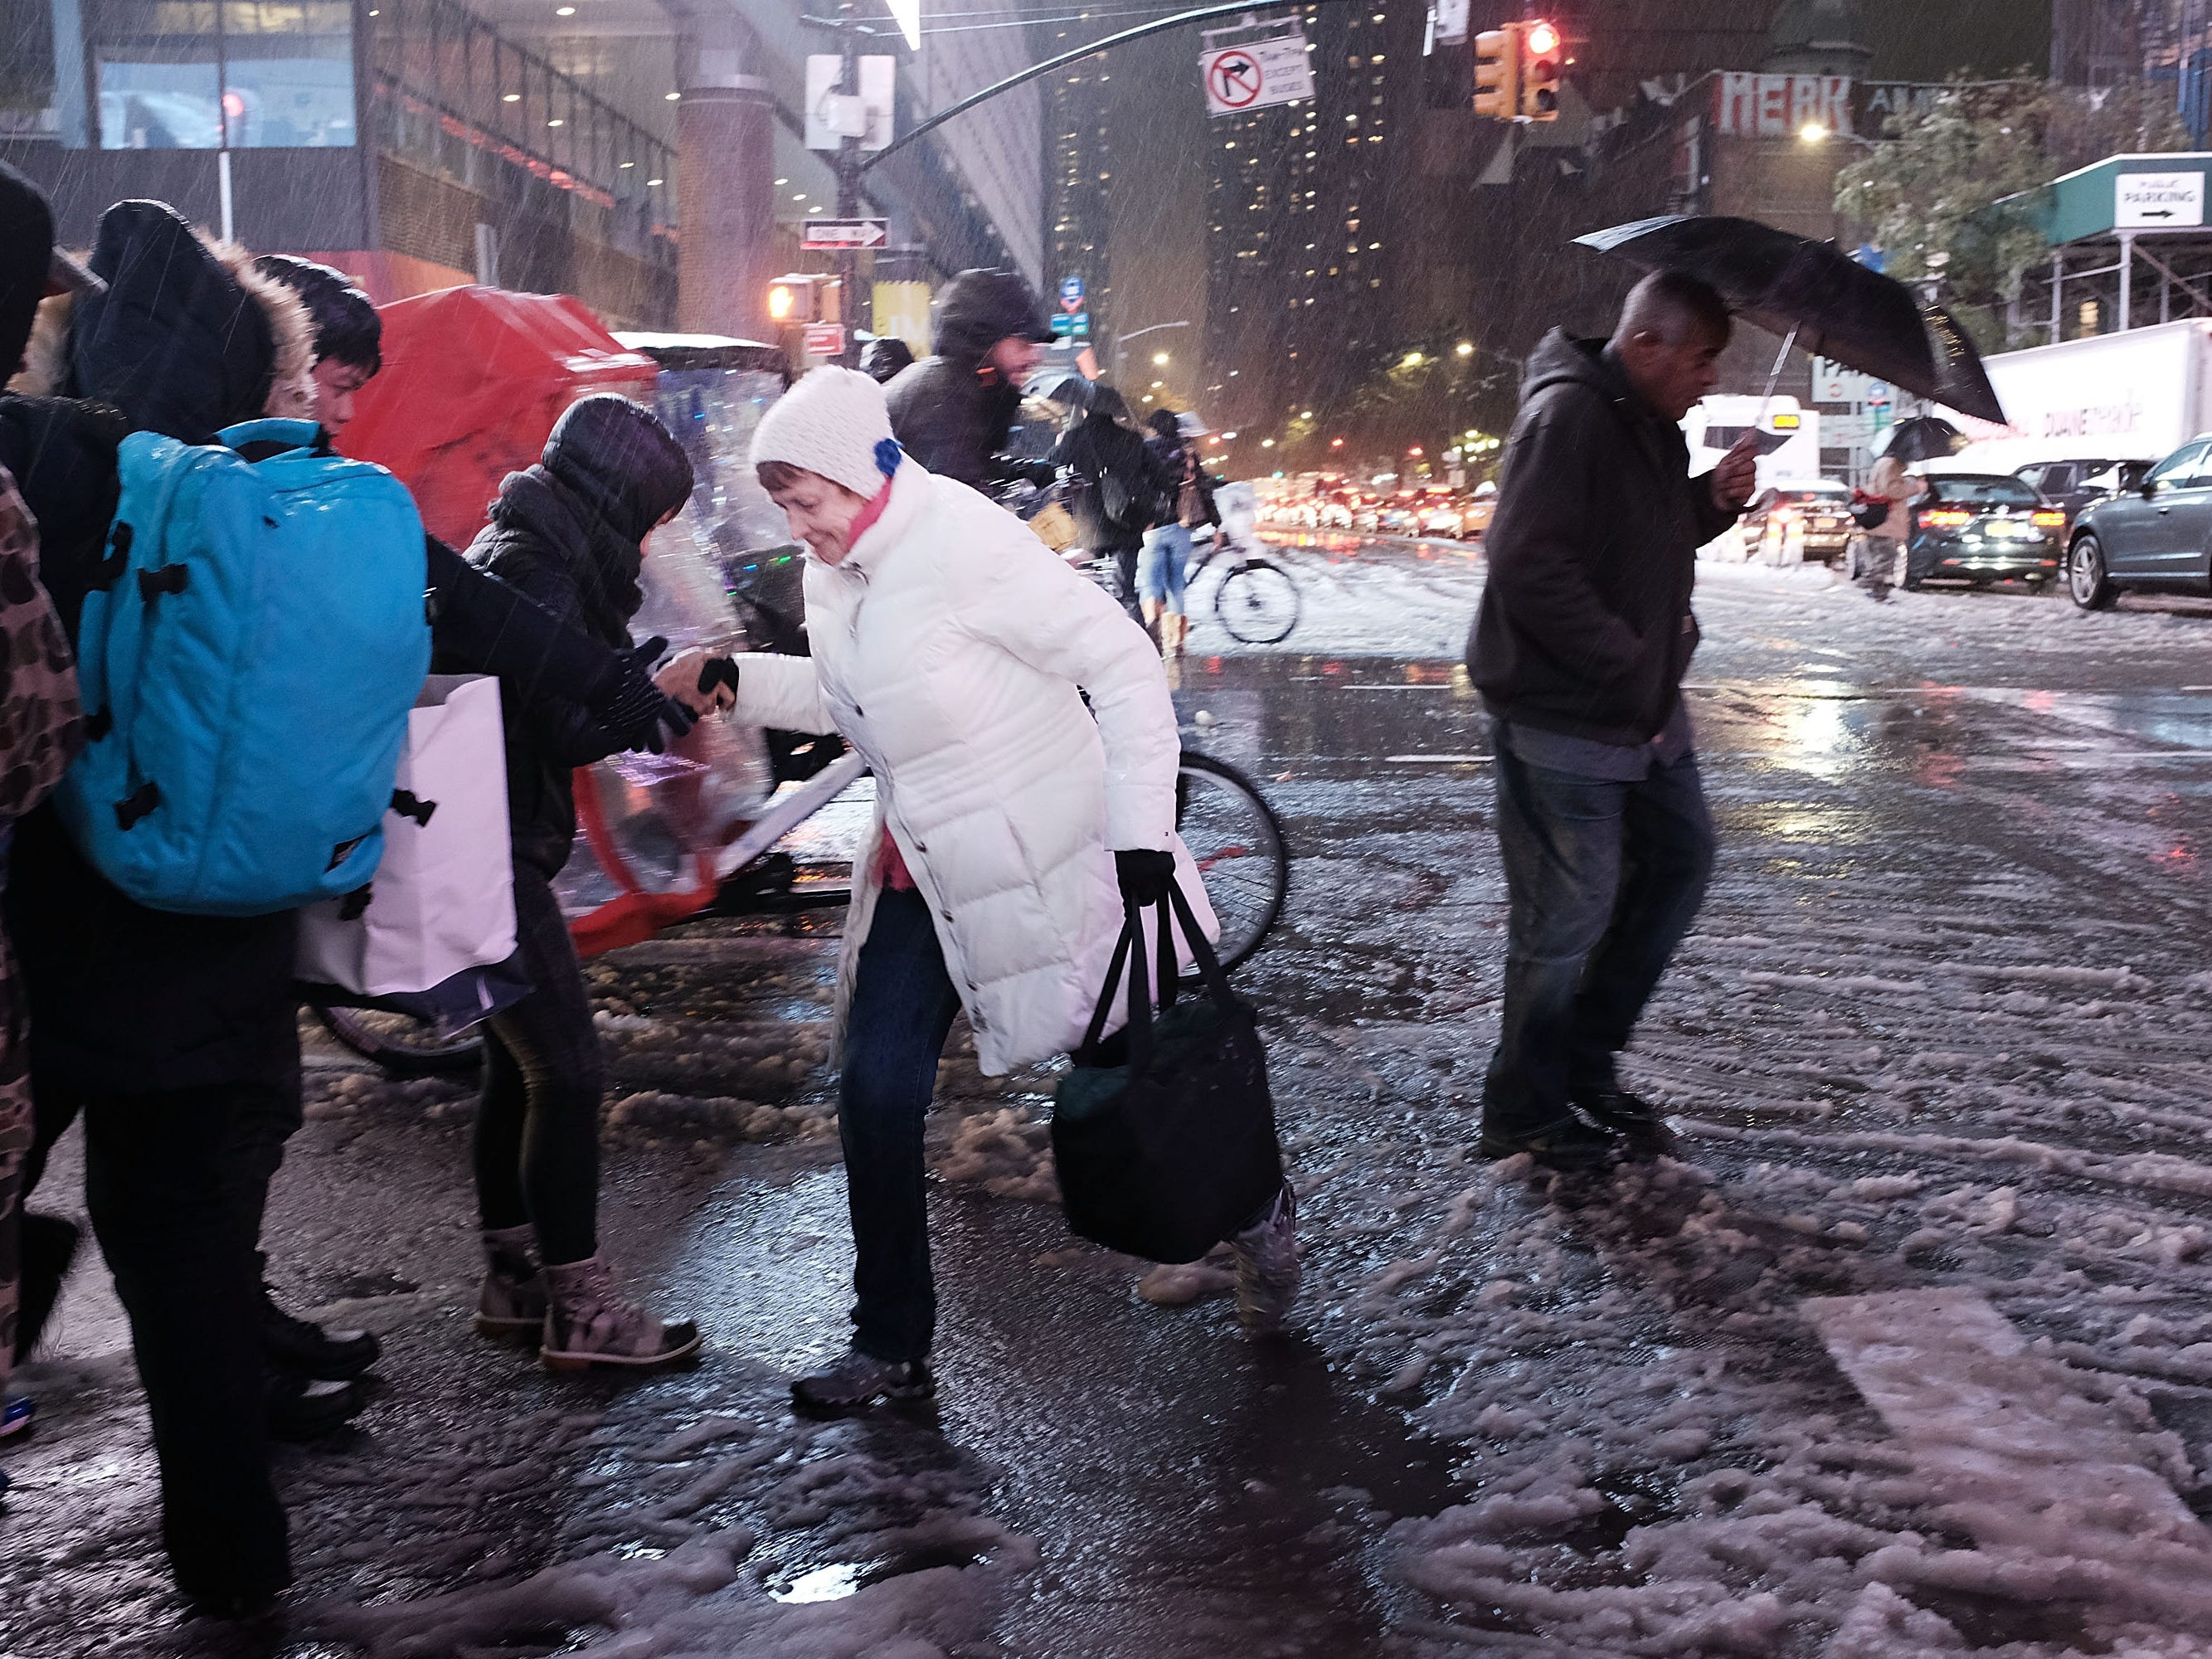 Pedestrians walk through a wintery mix of snow, rain and ice during the evening commute in Manhattan, Nov. 15, 2018 in New York City. New York experienced its first storm of the winter Thursday with over an inch of snow falling during the afternoon. A mix or rain and ice caused major backups along roadways and led to the cancellation of hundreds of buses.